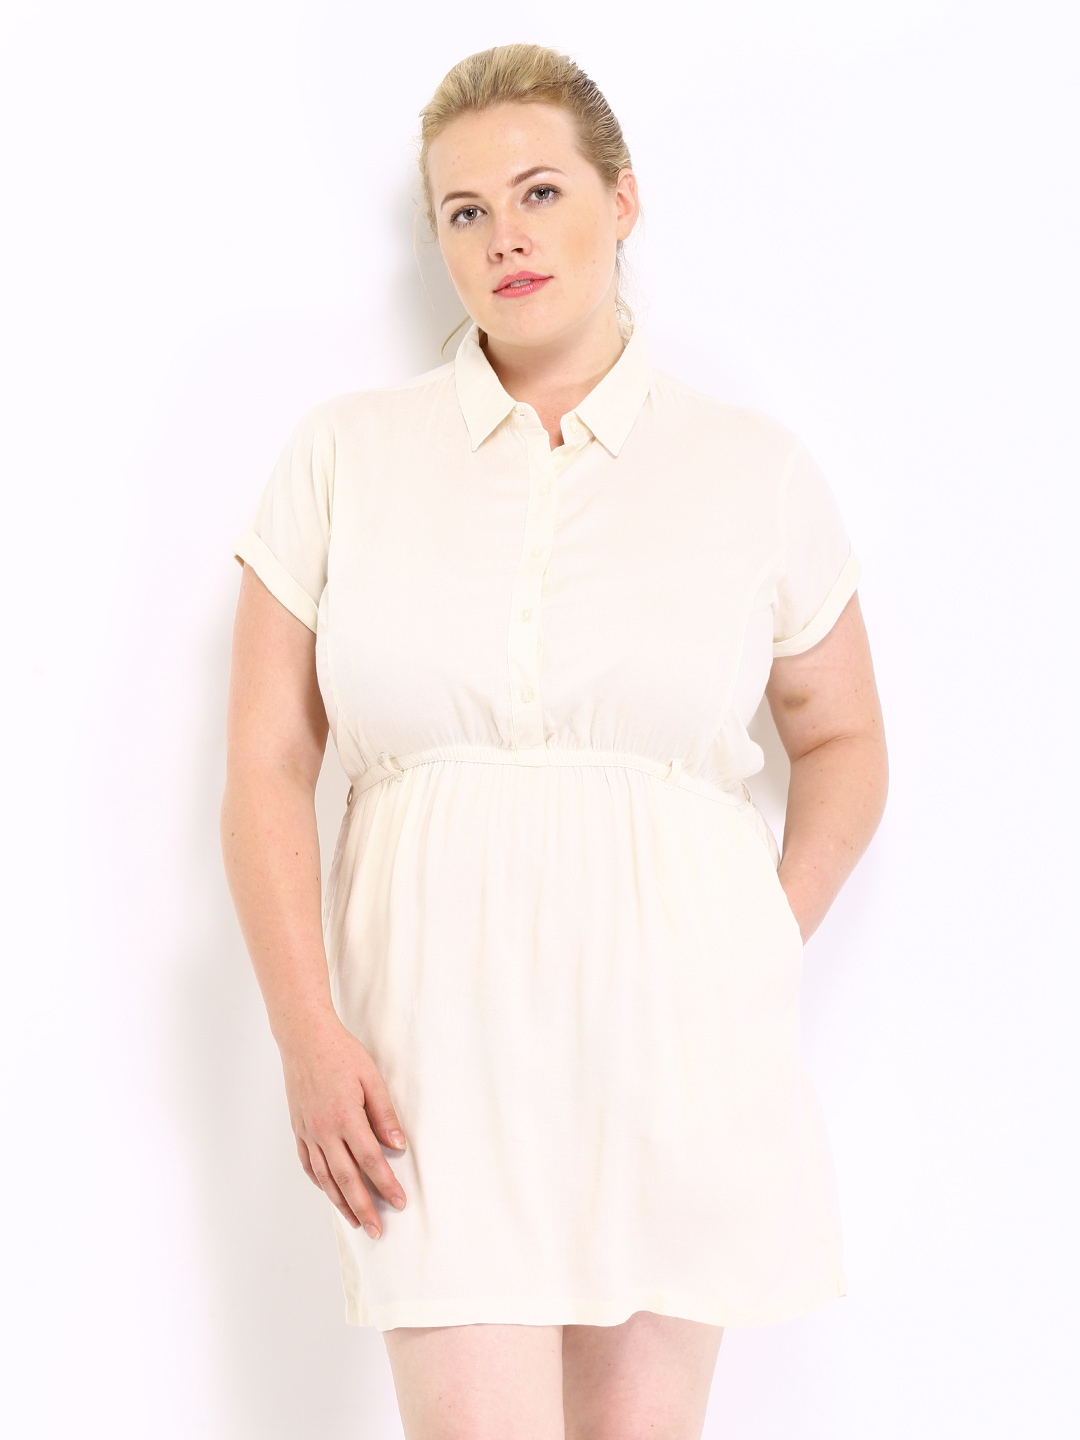 Myntra curvy by roadster off white shirt dress 330958 Buy white dress shirt